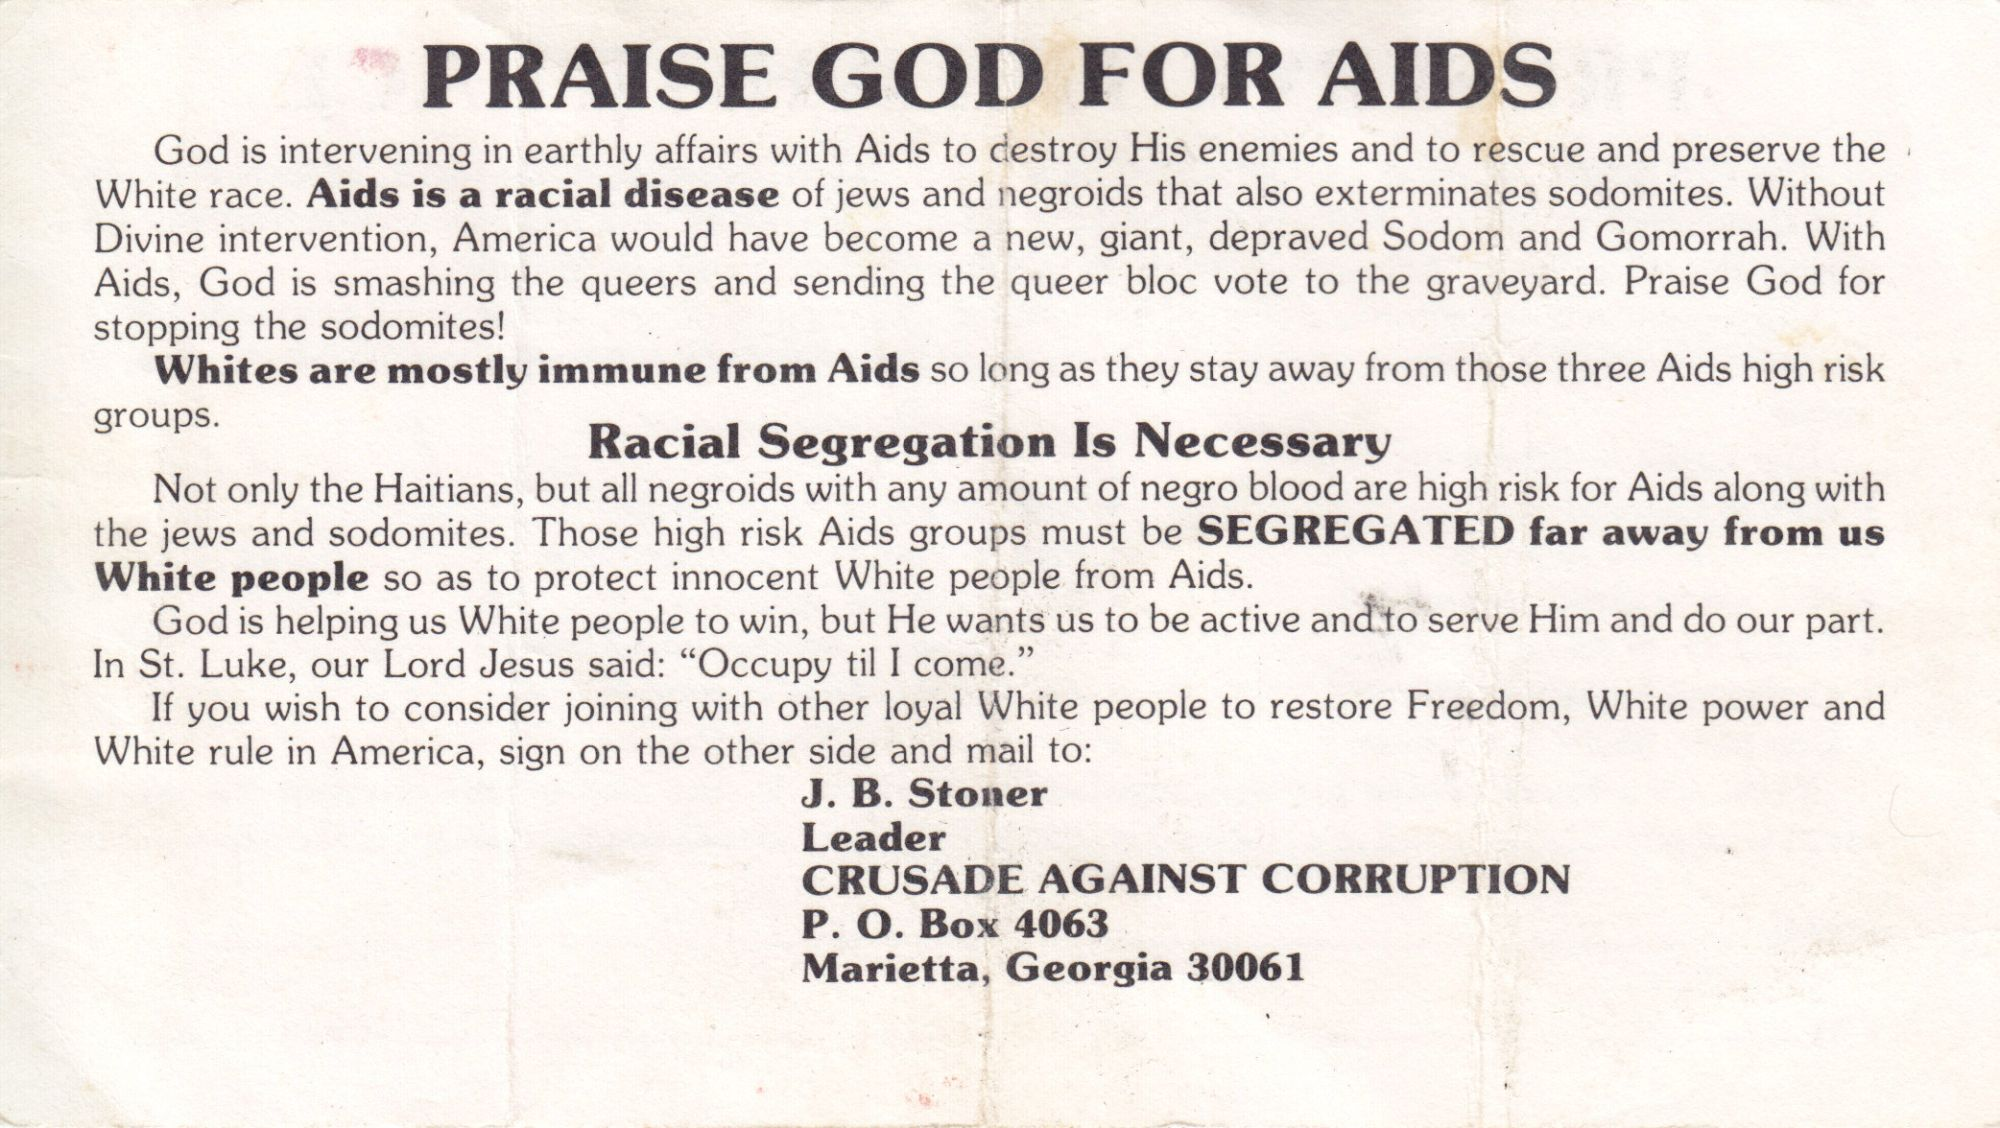 Hate][Civil Rights][Lgbtq][Aids]praise God for AIDS